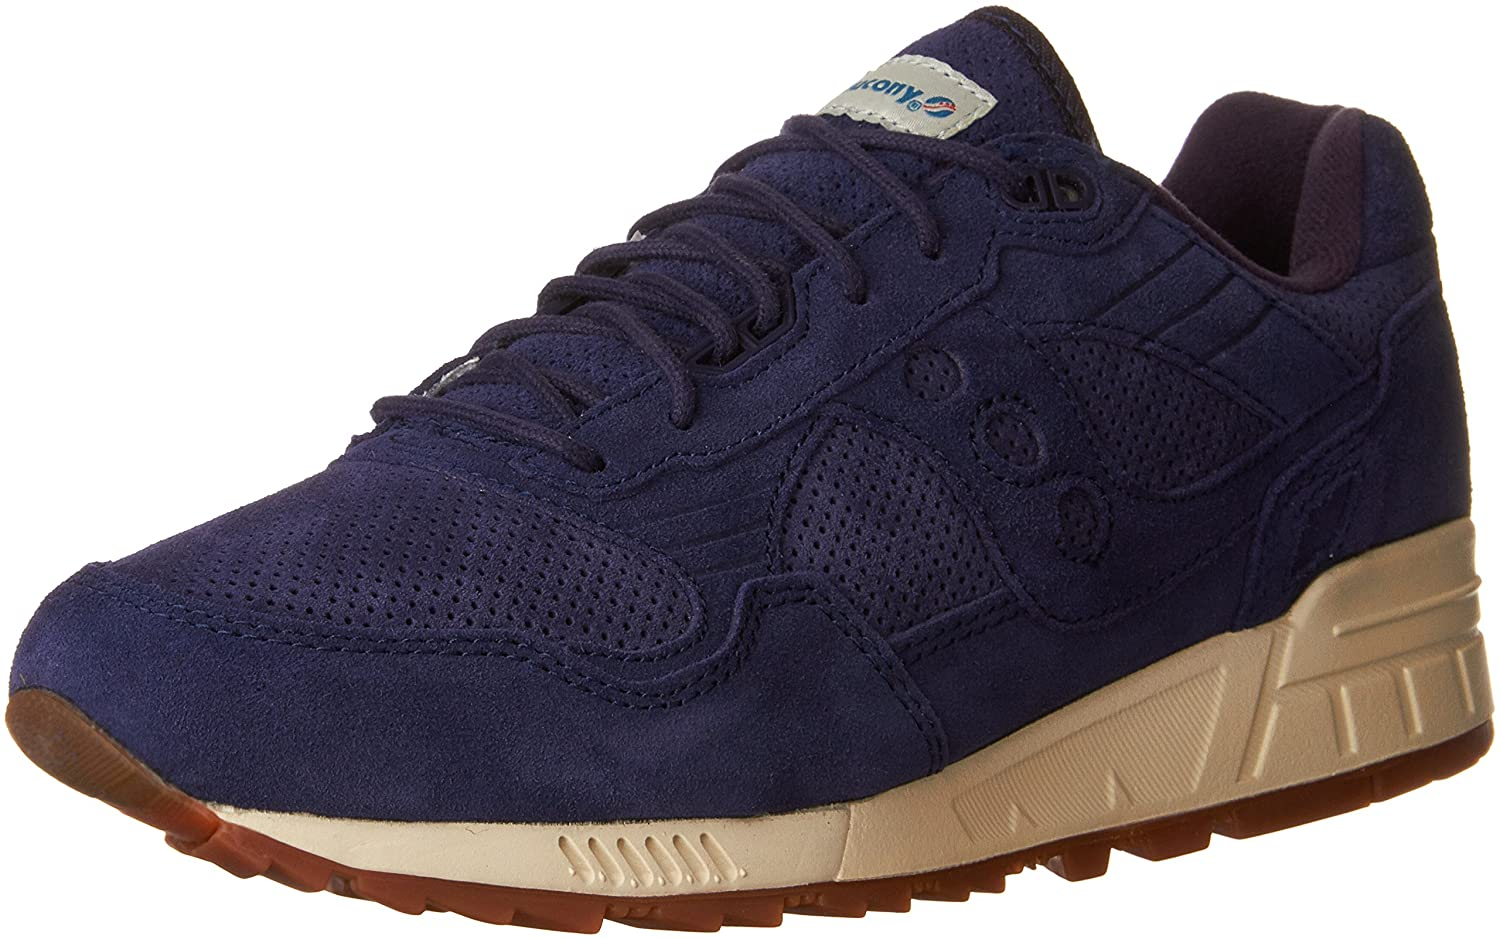 SAUCONY ORIGINALS Men's Shadow 5000 Sneakers Navy 10 M US S70301-1